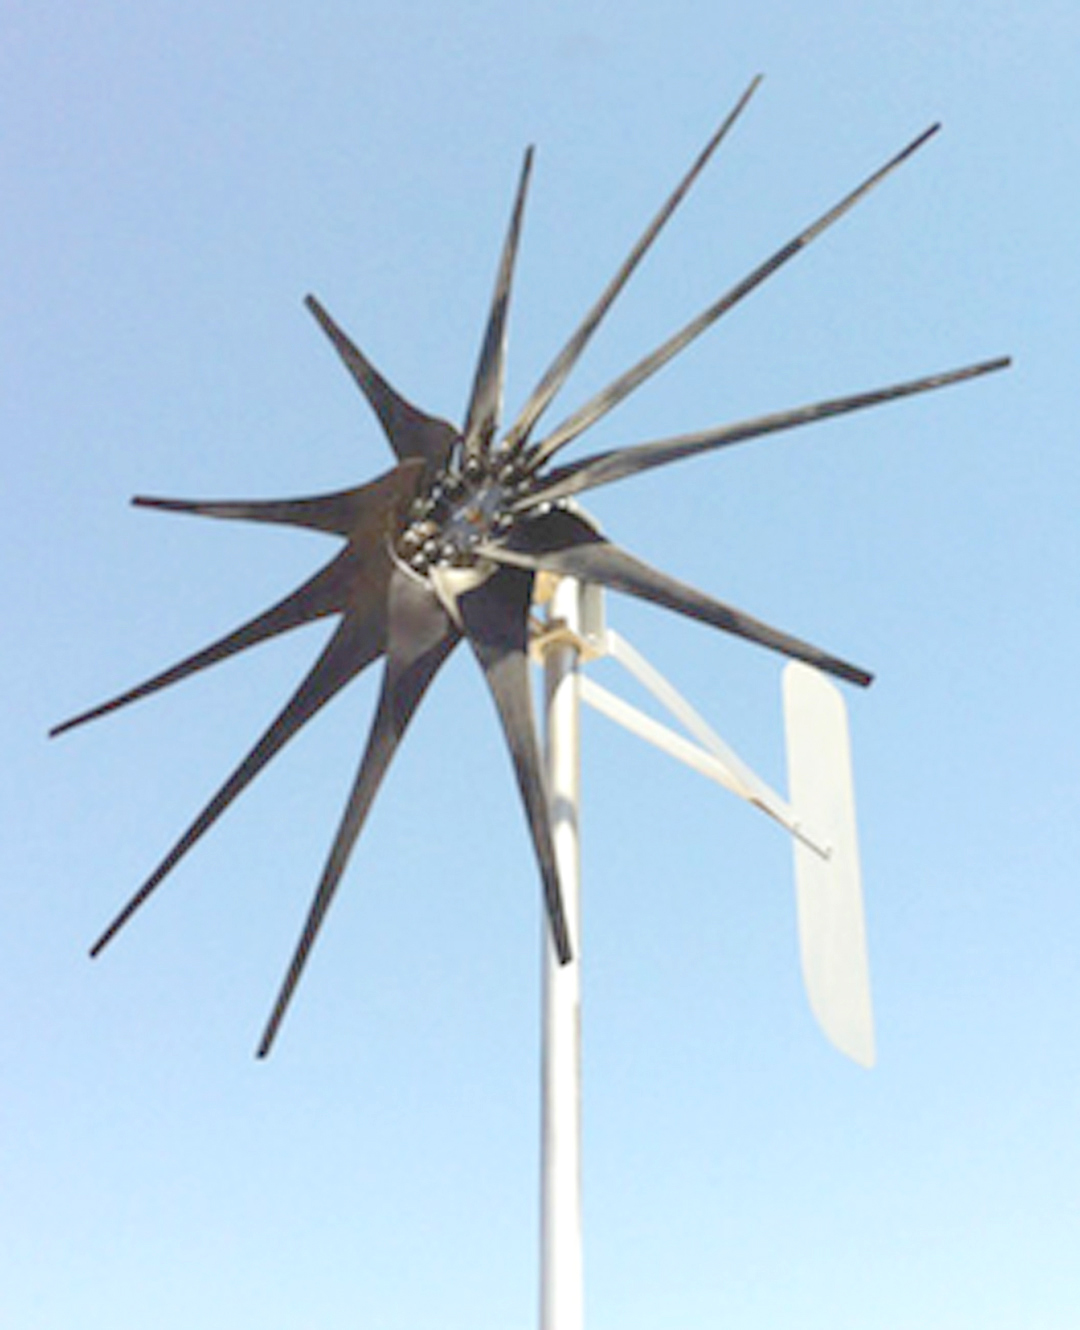 hight resolution of our wind turbine electricity generators offer low cost and economical installation for the do it yourselfer diy and off grid crowd